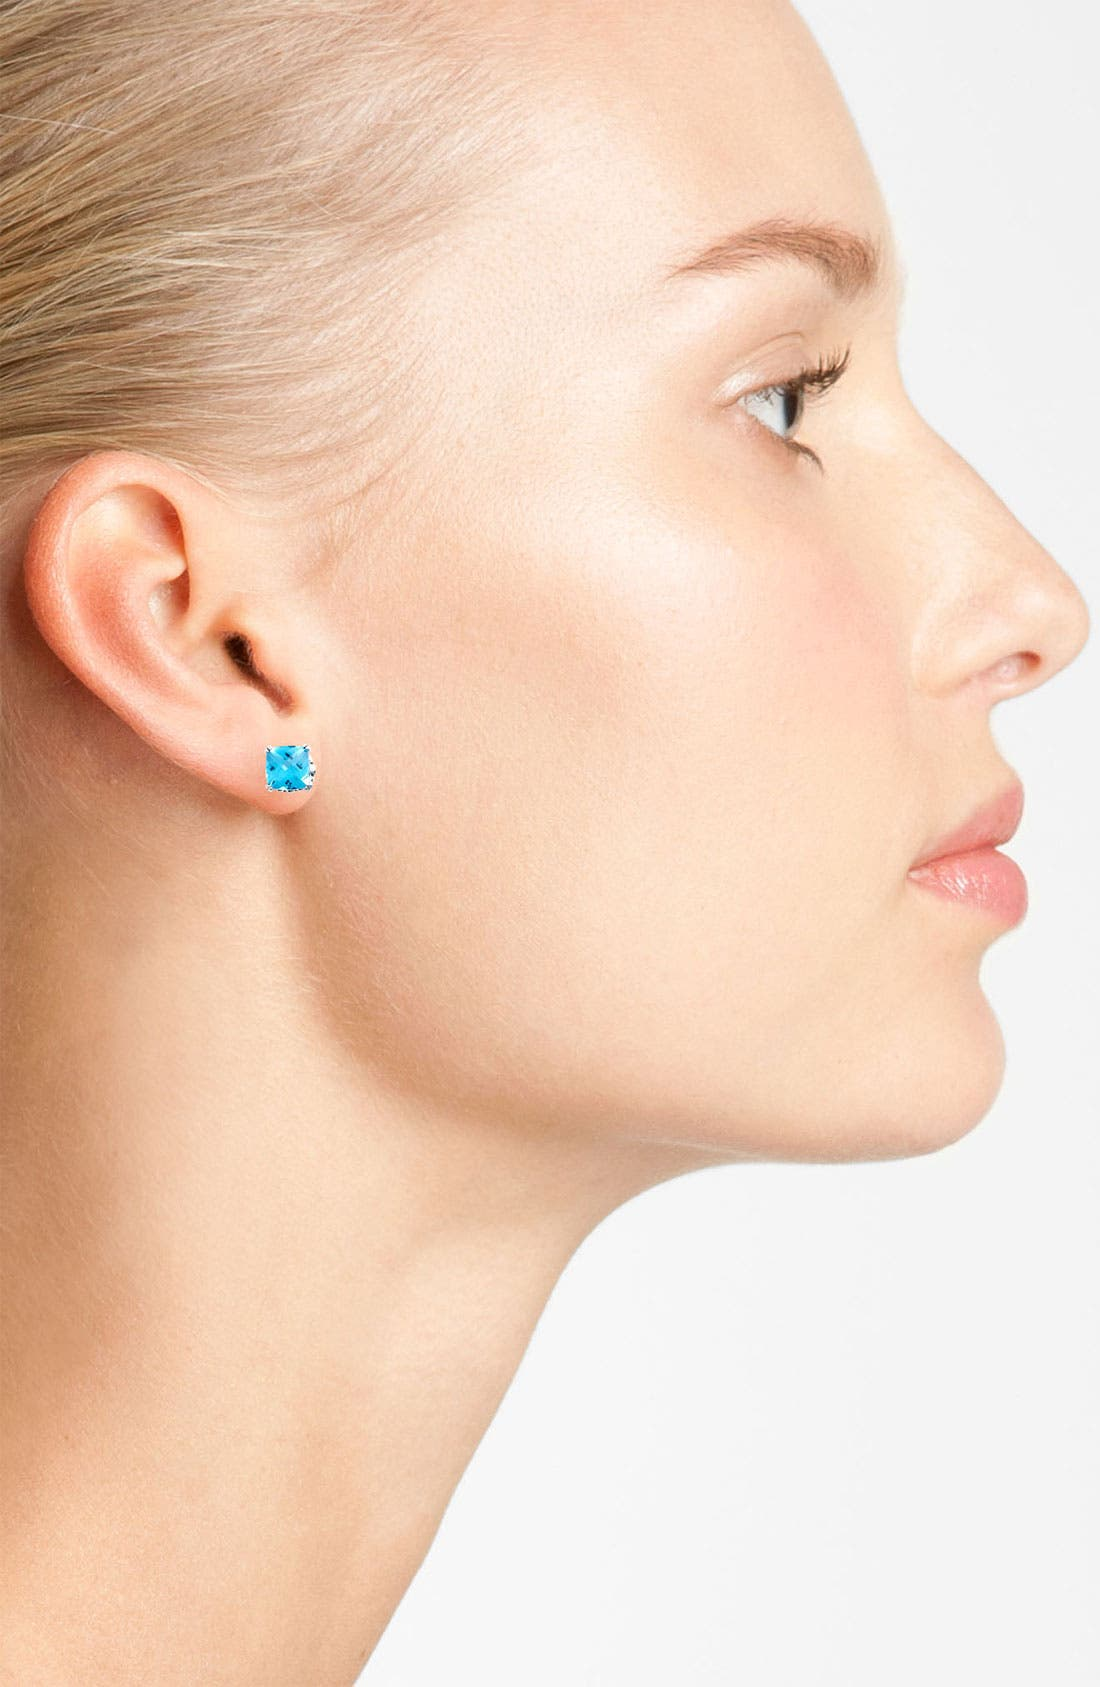 'Prism' Stud Earrings,                             Alternate thumbnail 6, color,                             SILVER/ BLUE TOPAZ